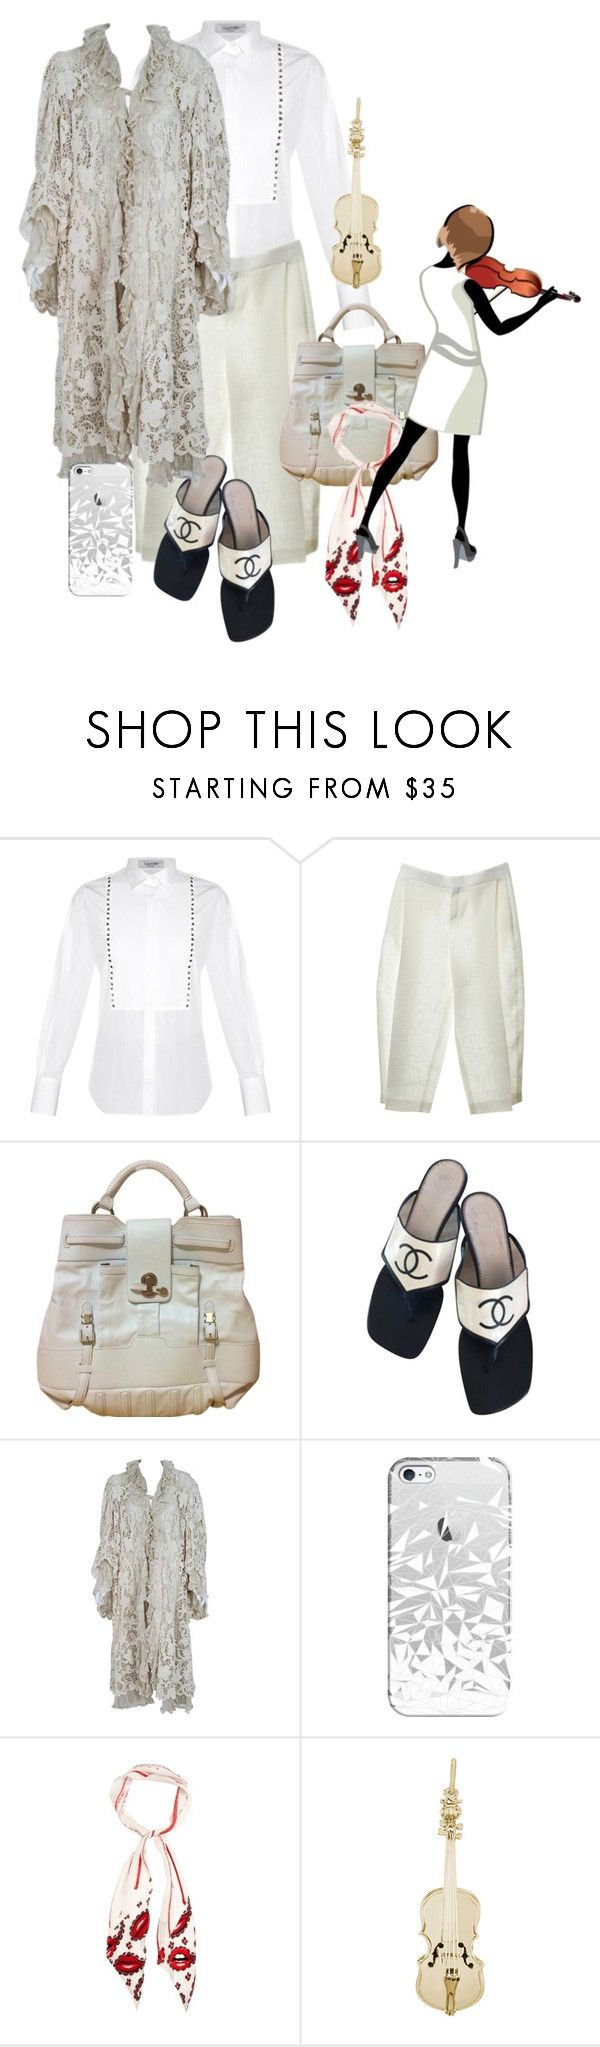 """broken white"" by aries-indonesia ❤ liked on Polyvore featuring Valentino, Chloé, Versace, Chanel, Casetify, Rockins and Rembrandt Charms"